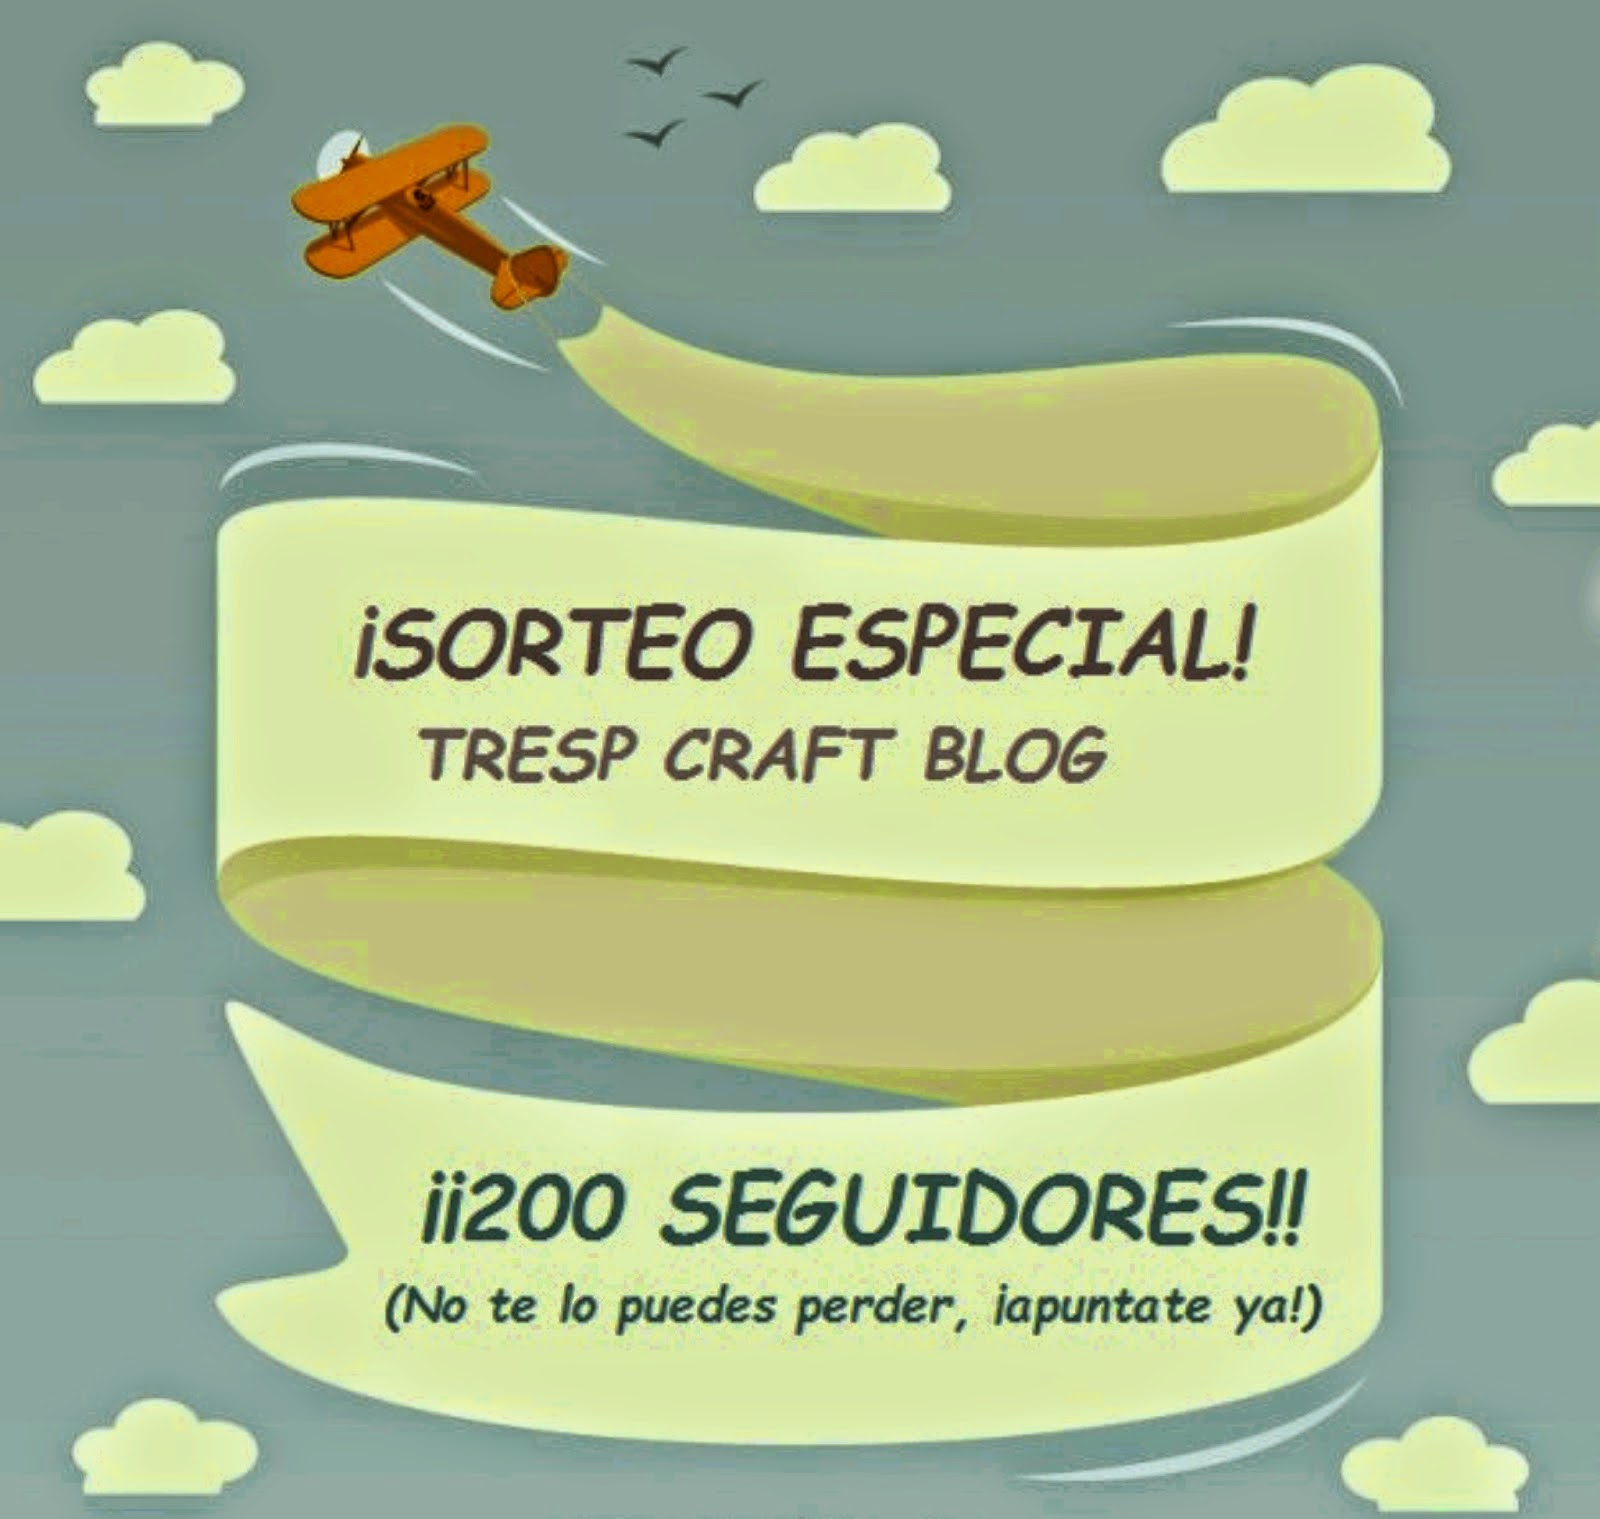 SORTEO EN TRESP CRAFT